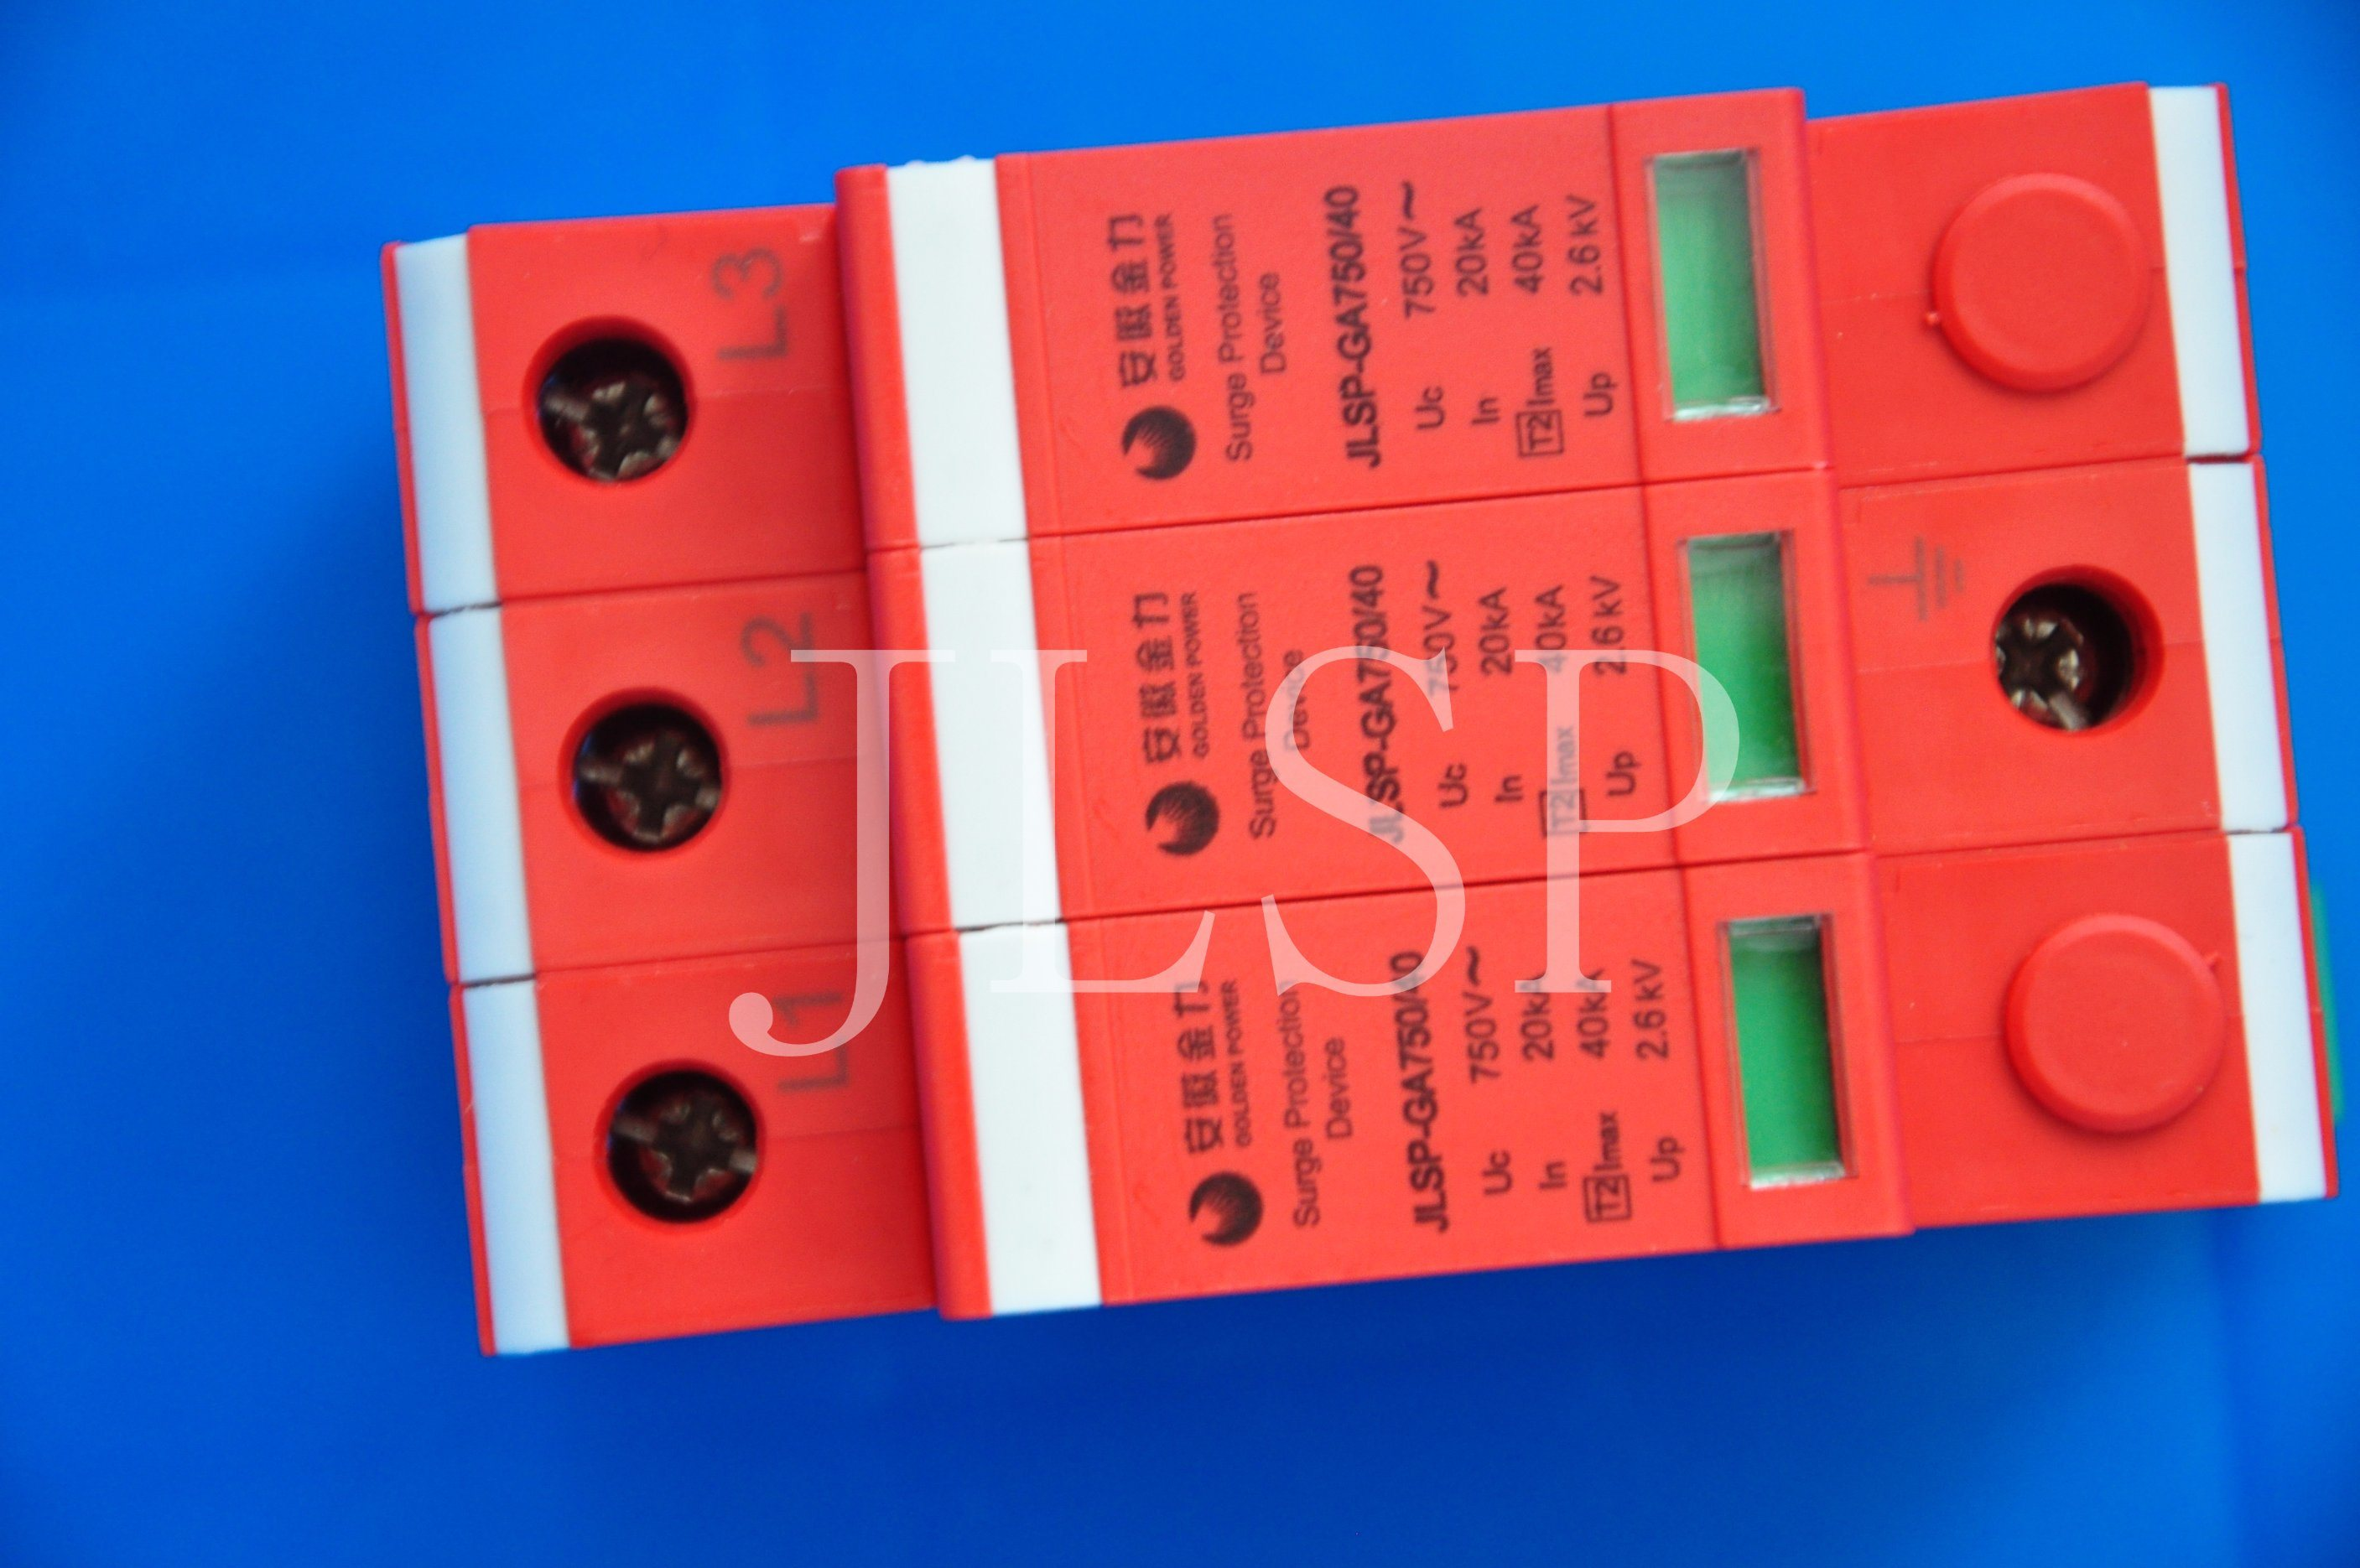 PV Application 20-40ka Solar 3p DC 1000V, Jlsp-Ga750-40, SPD, Surge Protector, 17005